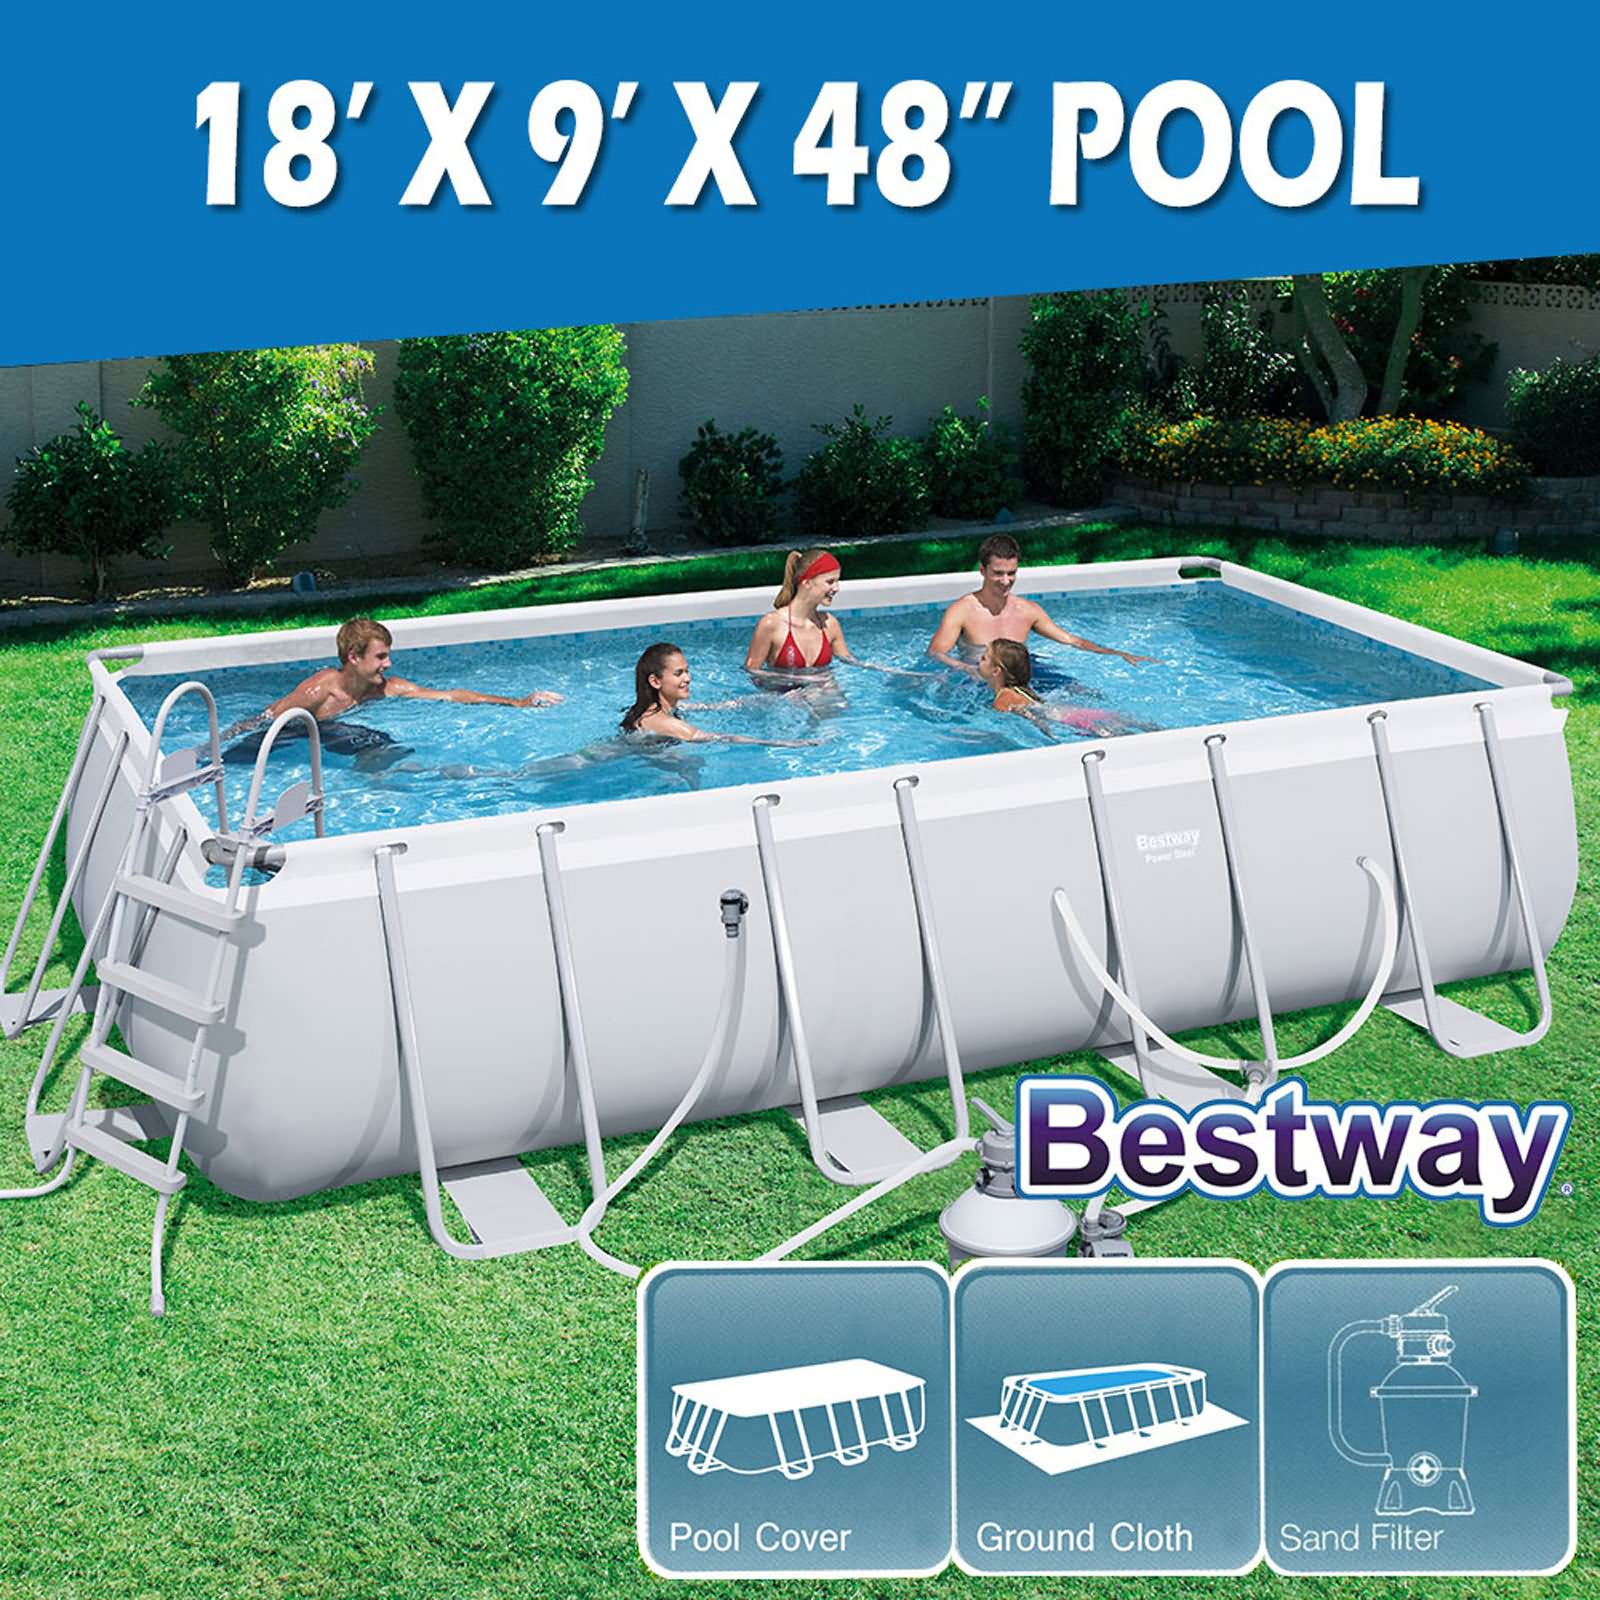 Frame Pool Bestway Details About Bestway Above Ground Swimming Pool Steel Frame Sand Filter Pump 18ft 5 49x2 74m